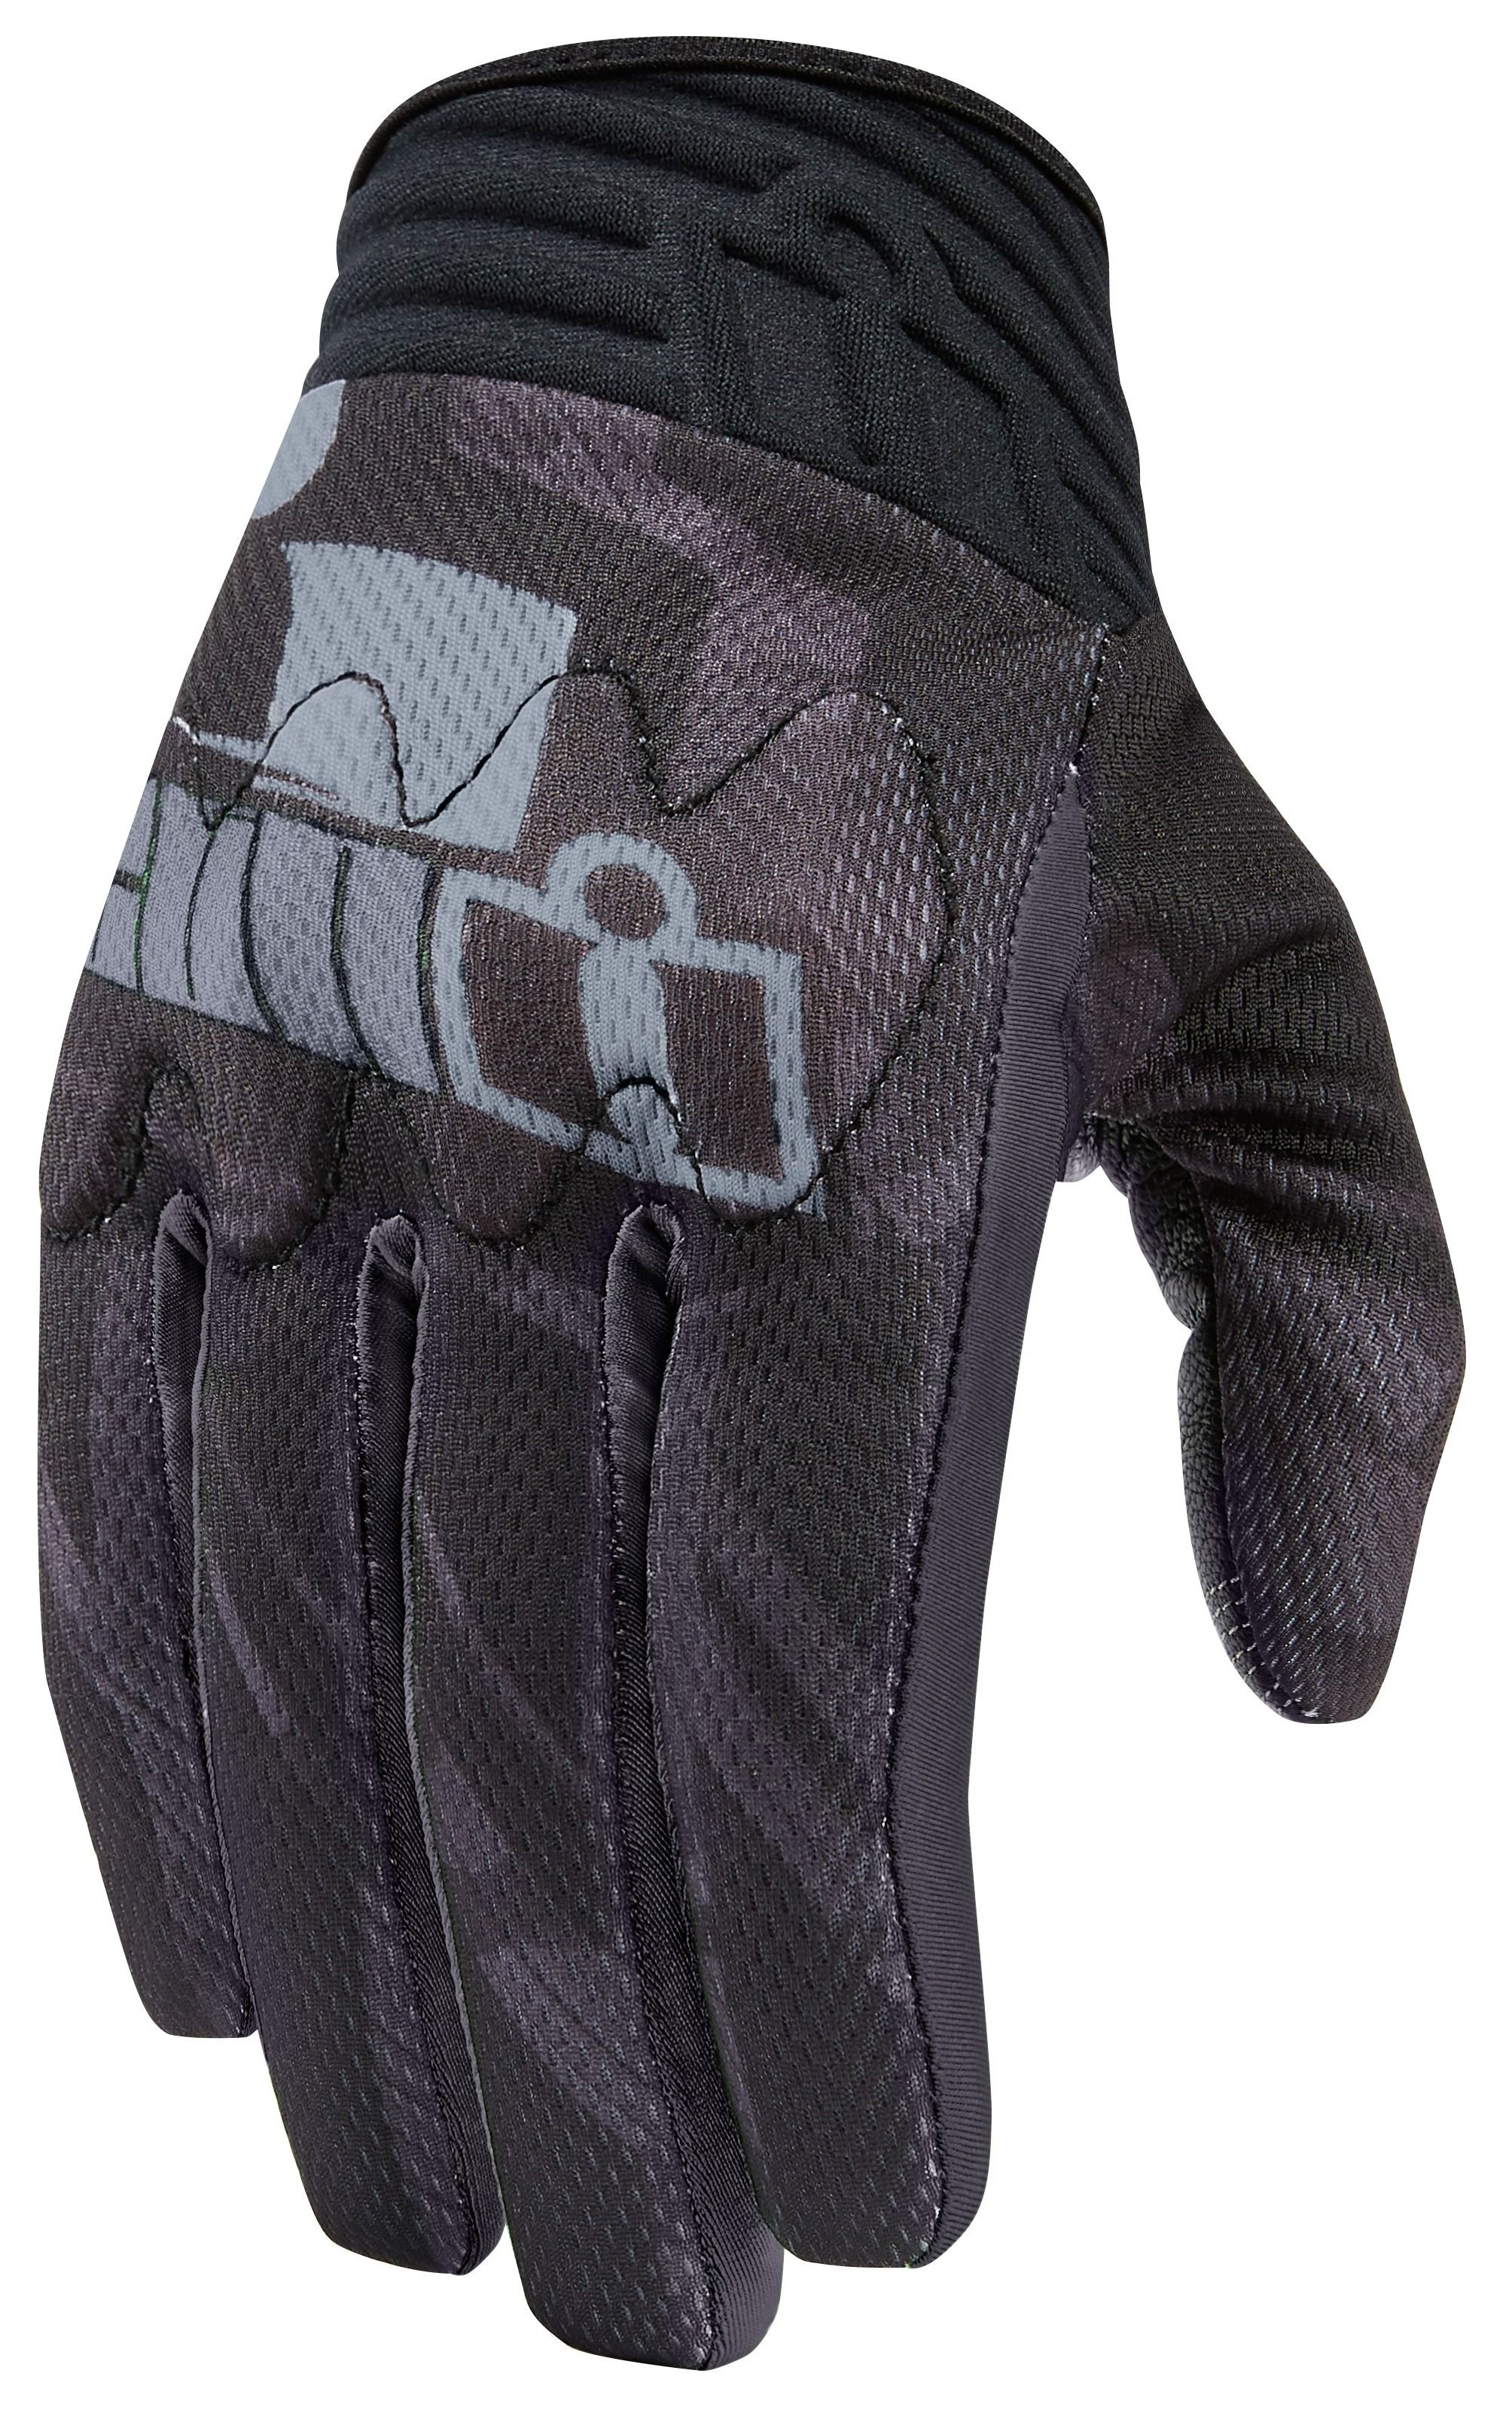 Motorcycle gloves d30 - Motorcycle Gloves D30 38